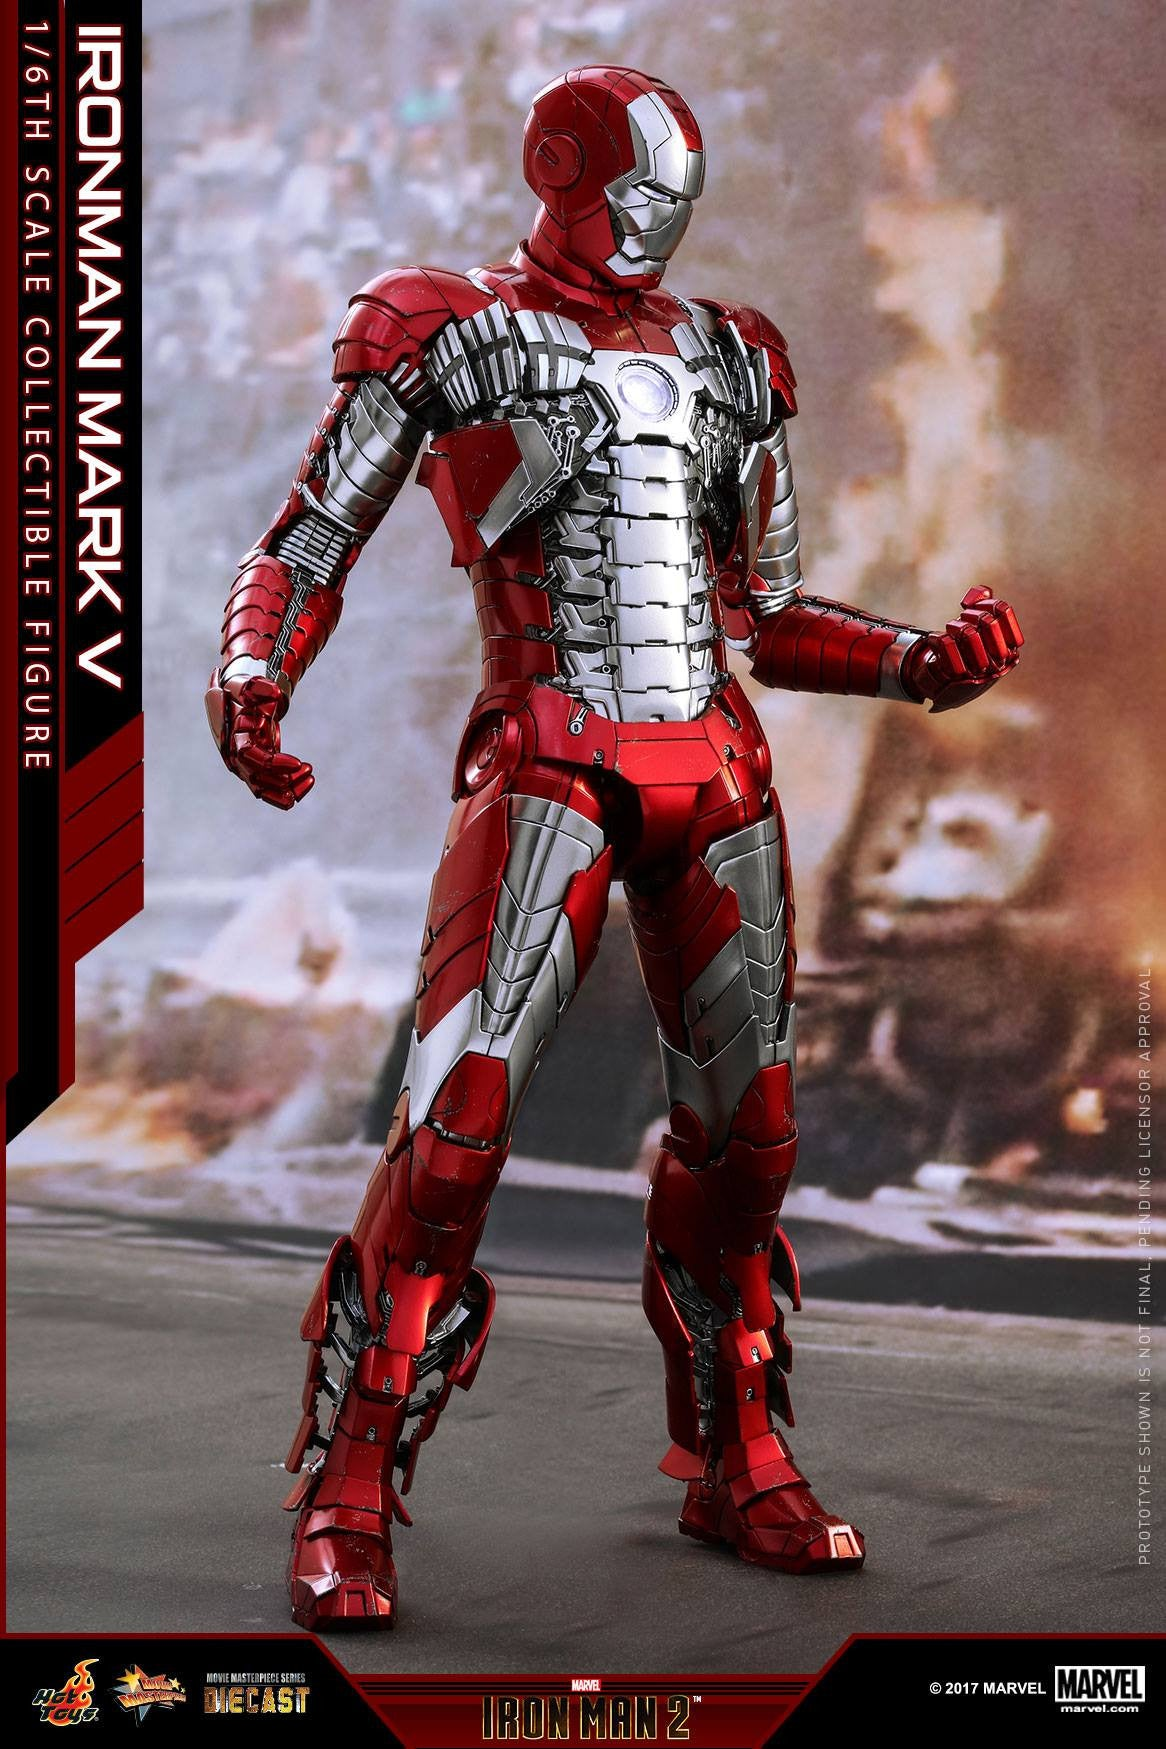 Hot Toys - MMS400D18 - Iron Man 2 - Mark V (DIECAST) - Marvelous Toys - 19